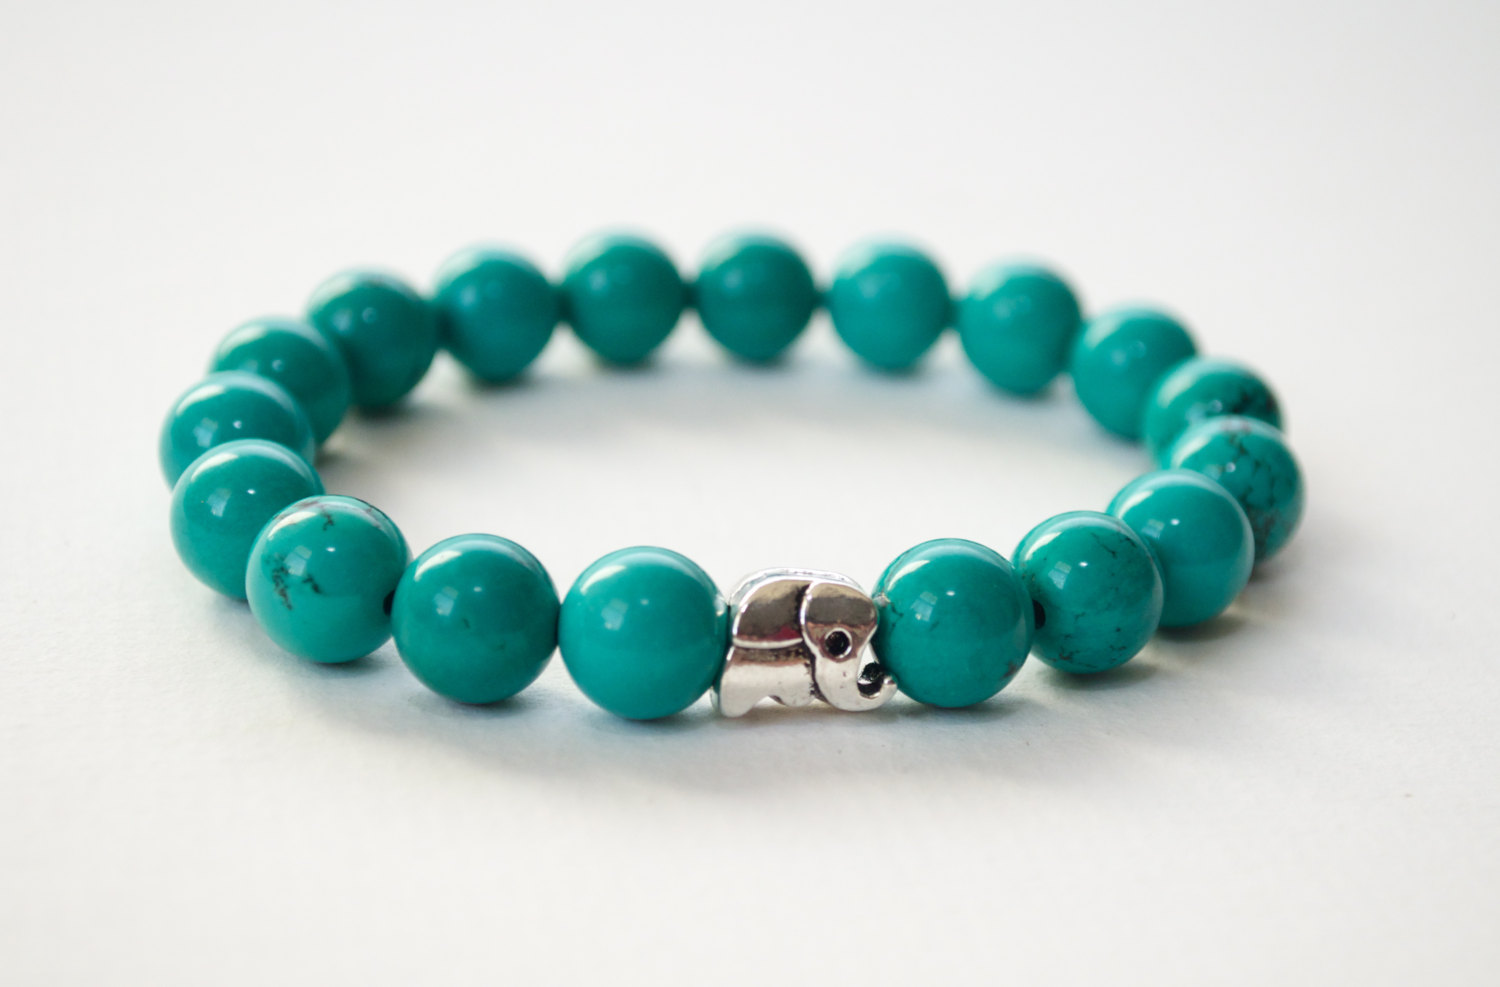 Adorn Your Hands With Turquoise Bracelets